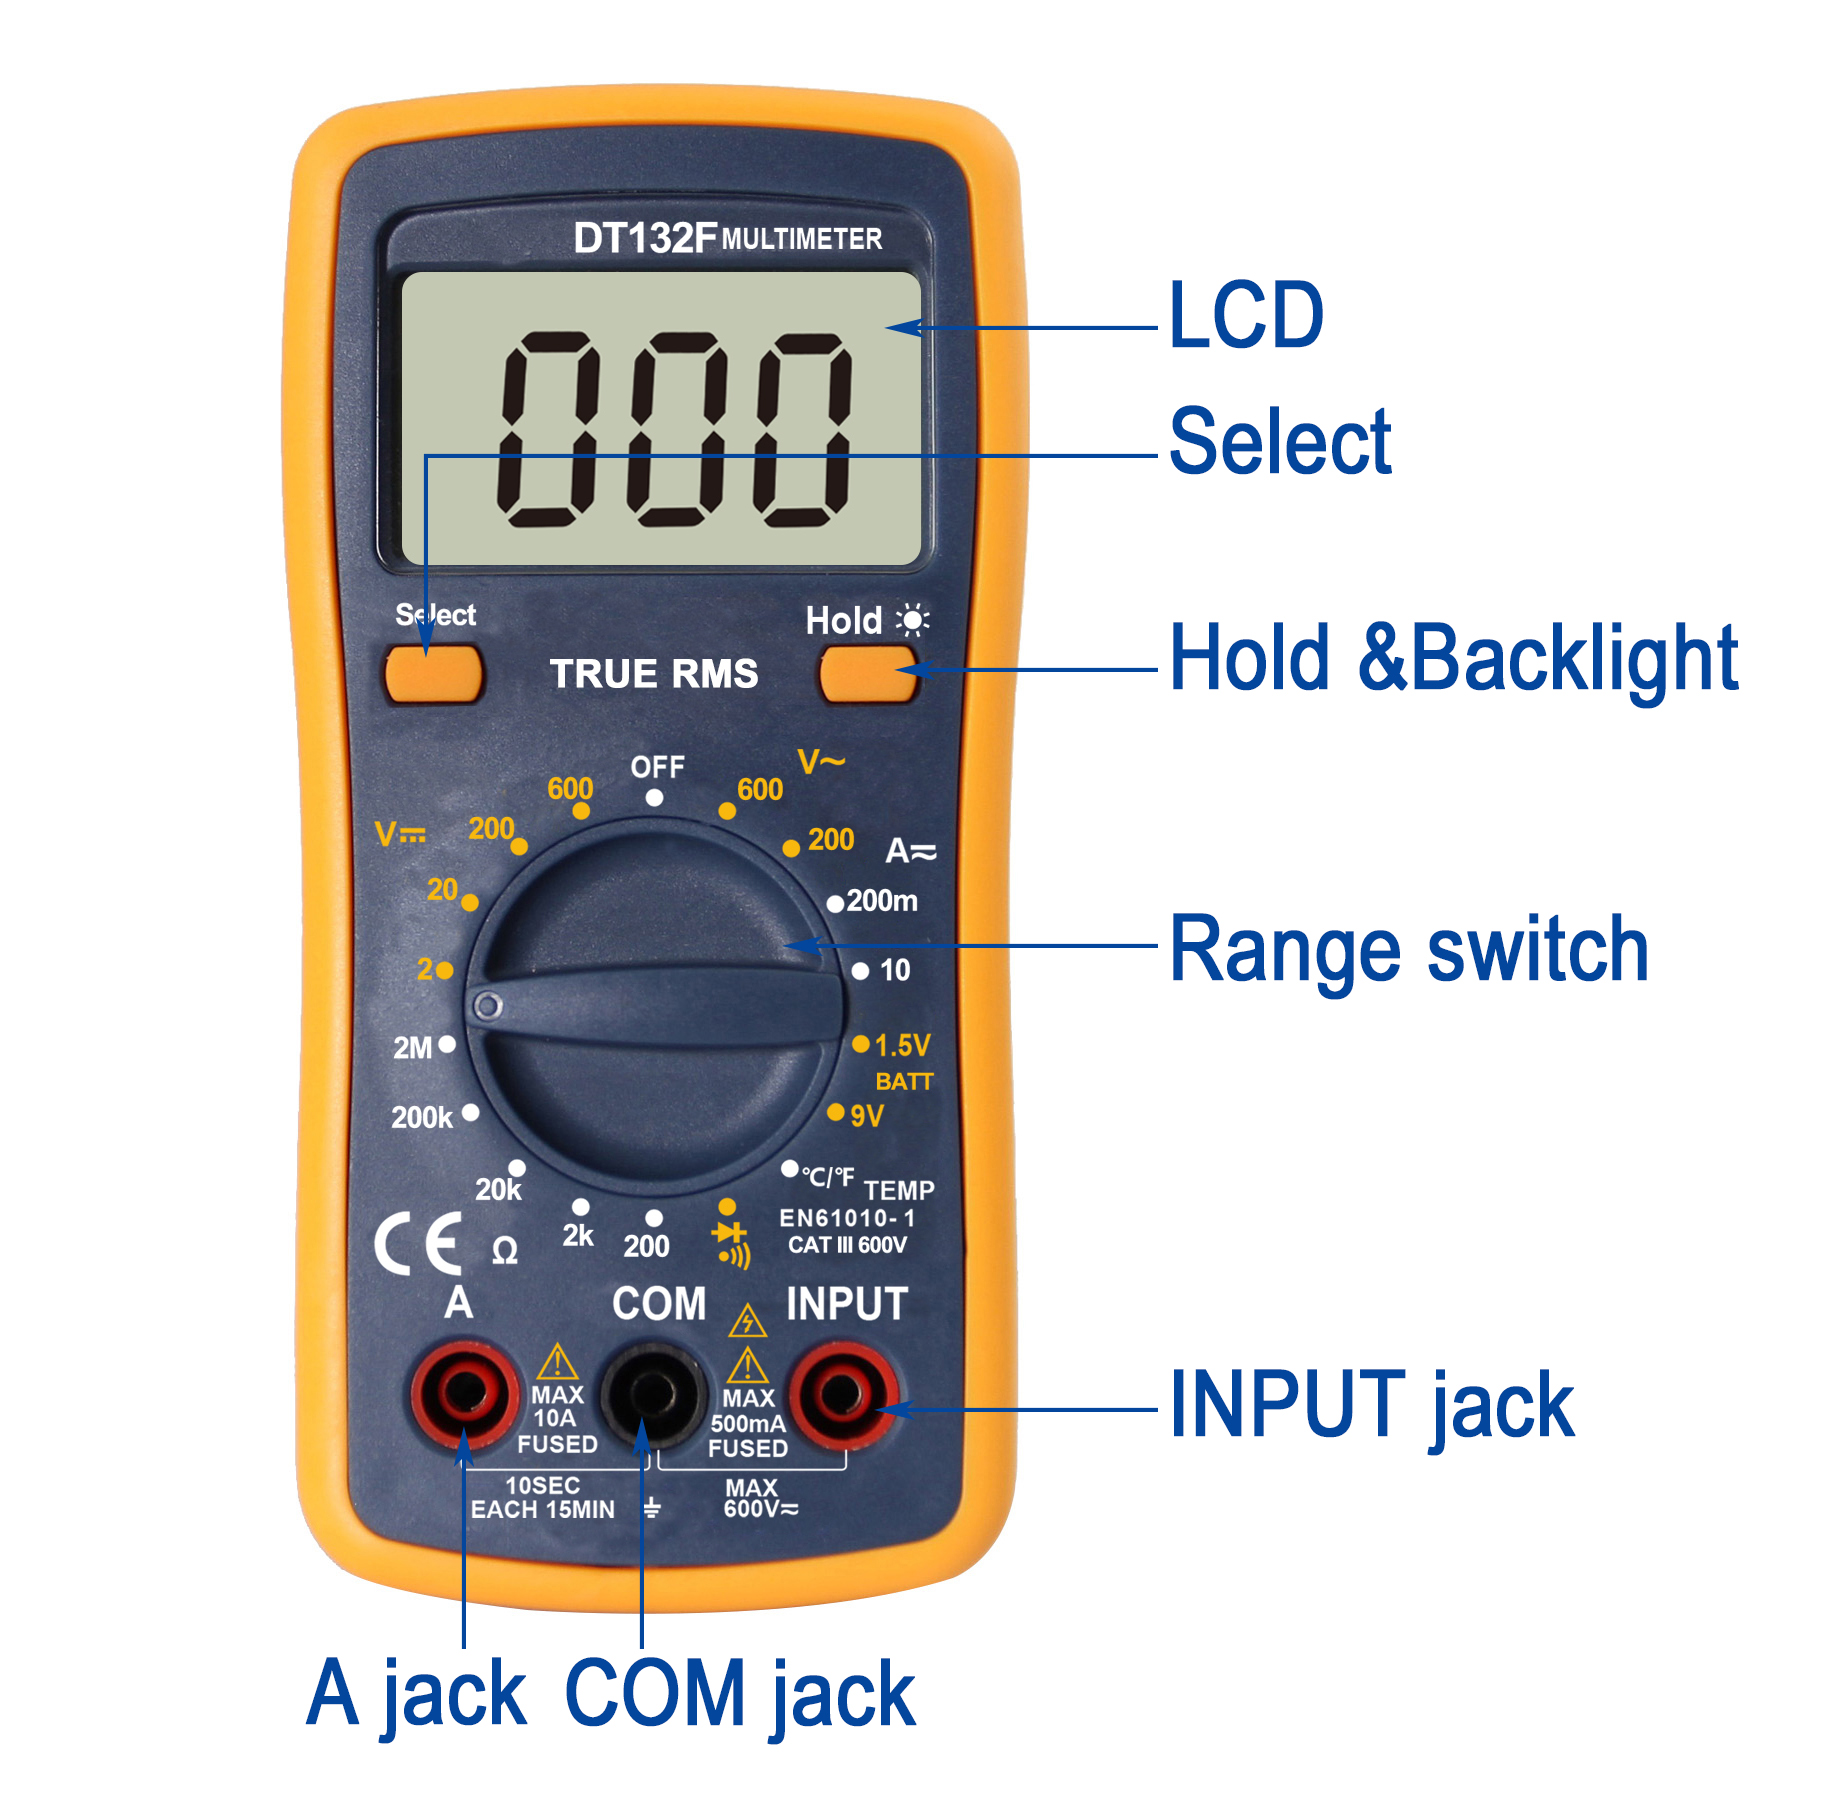 multimeter NEW ARRIVAL HOT PRODUCT Auto range DT132F